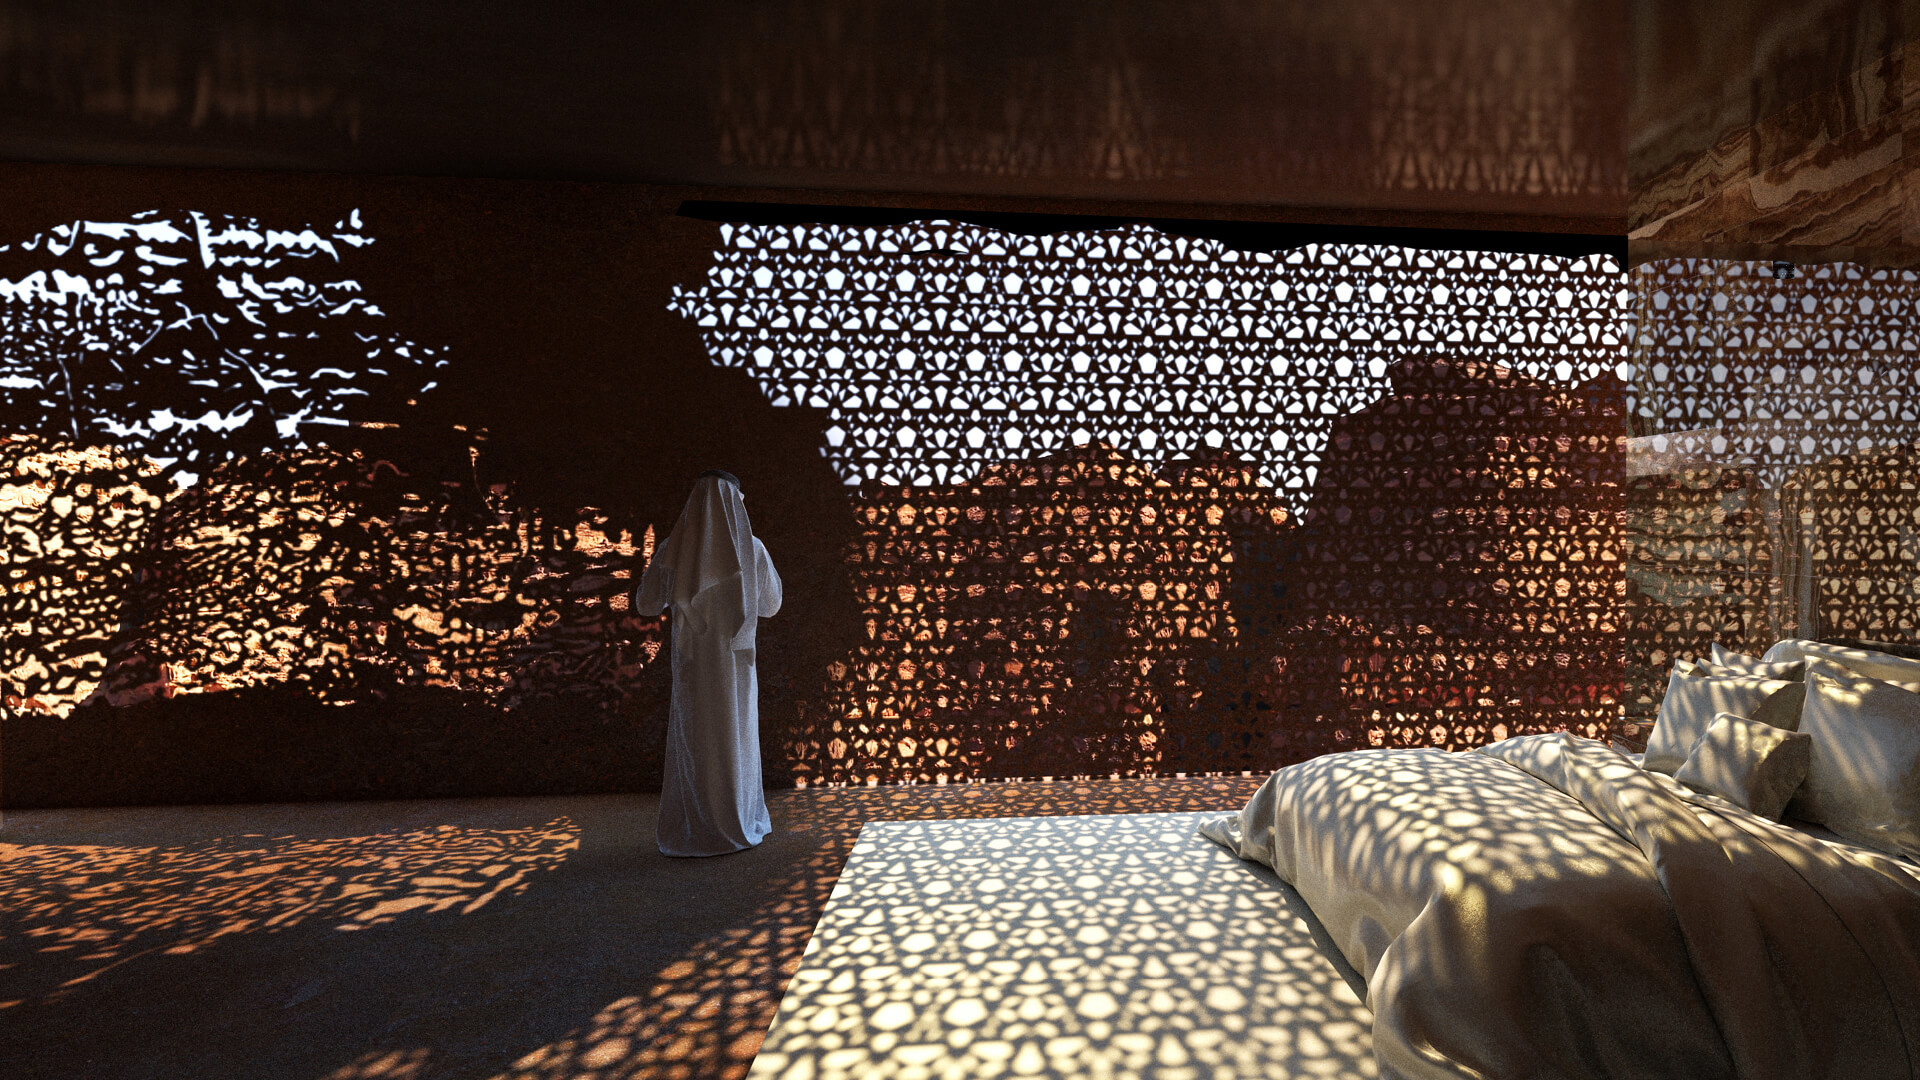 Sharaan Resort designed by Ateliers Jean Nouvel uses nature as a precursor to design | Sharaan Resort | Jean Nouvel | STIRworld